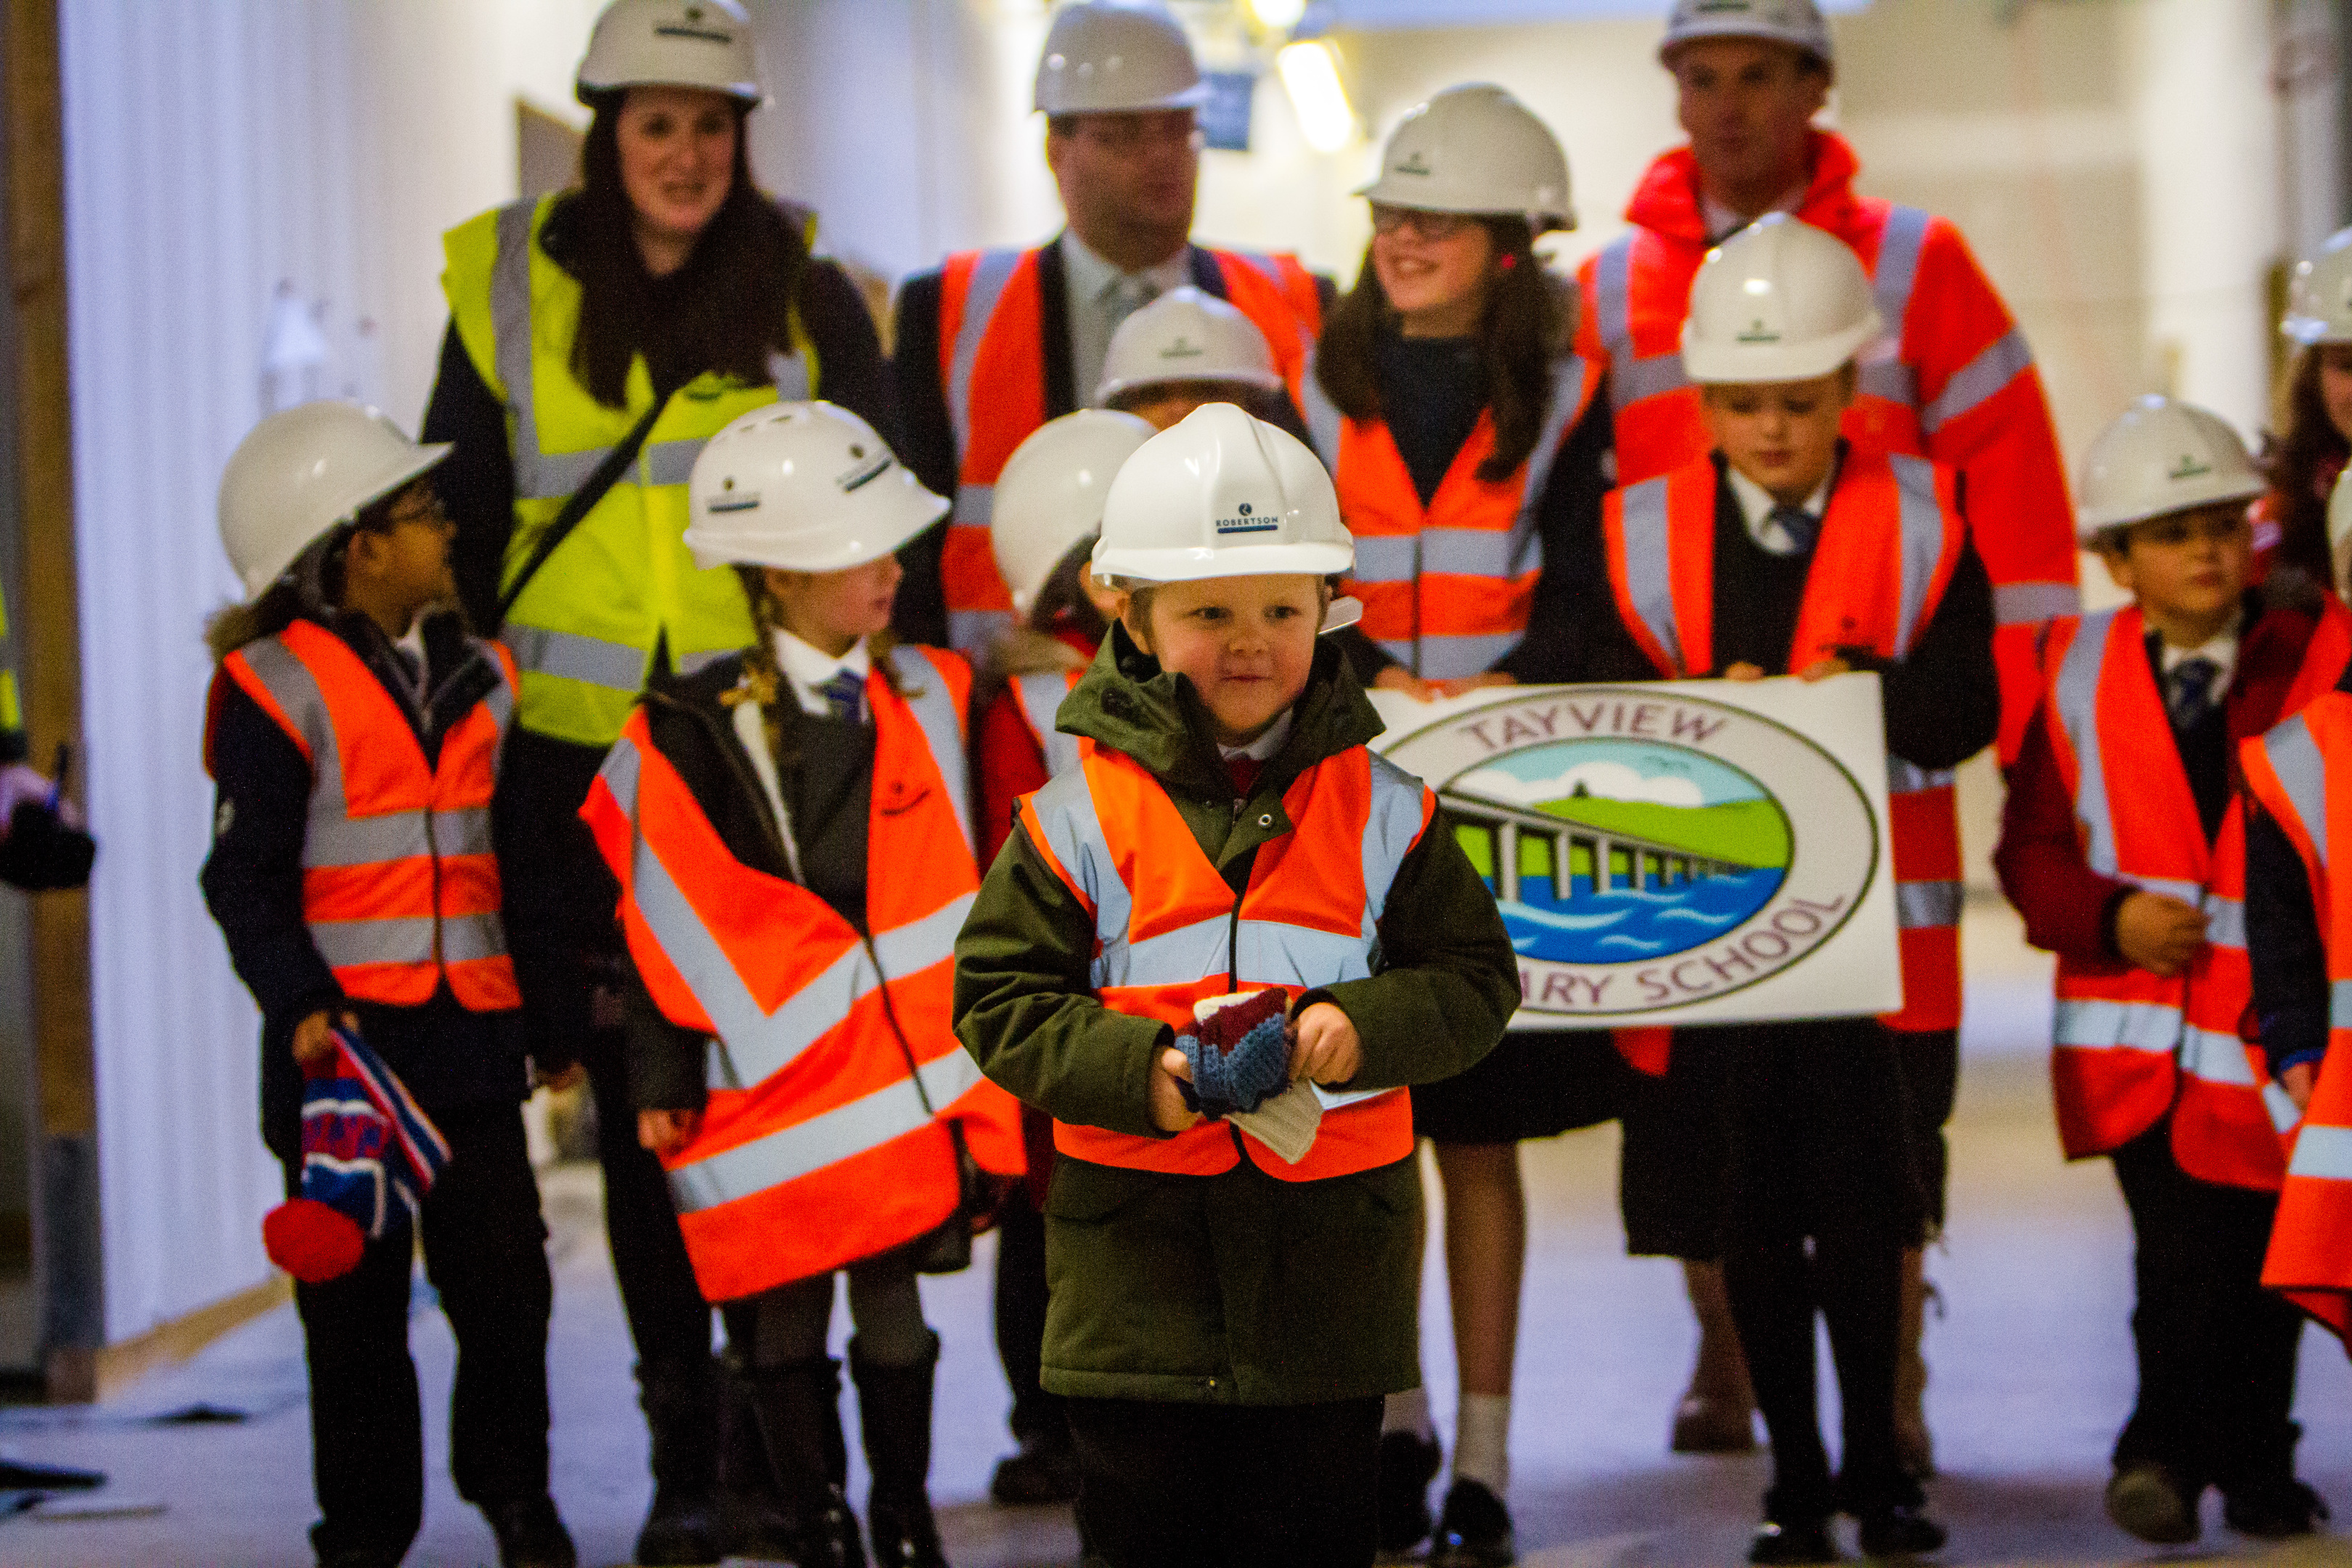 Pupils from the two Tayview School campuses were given a tour of the new site